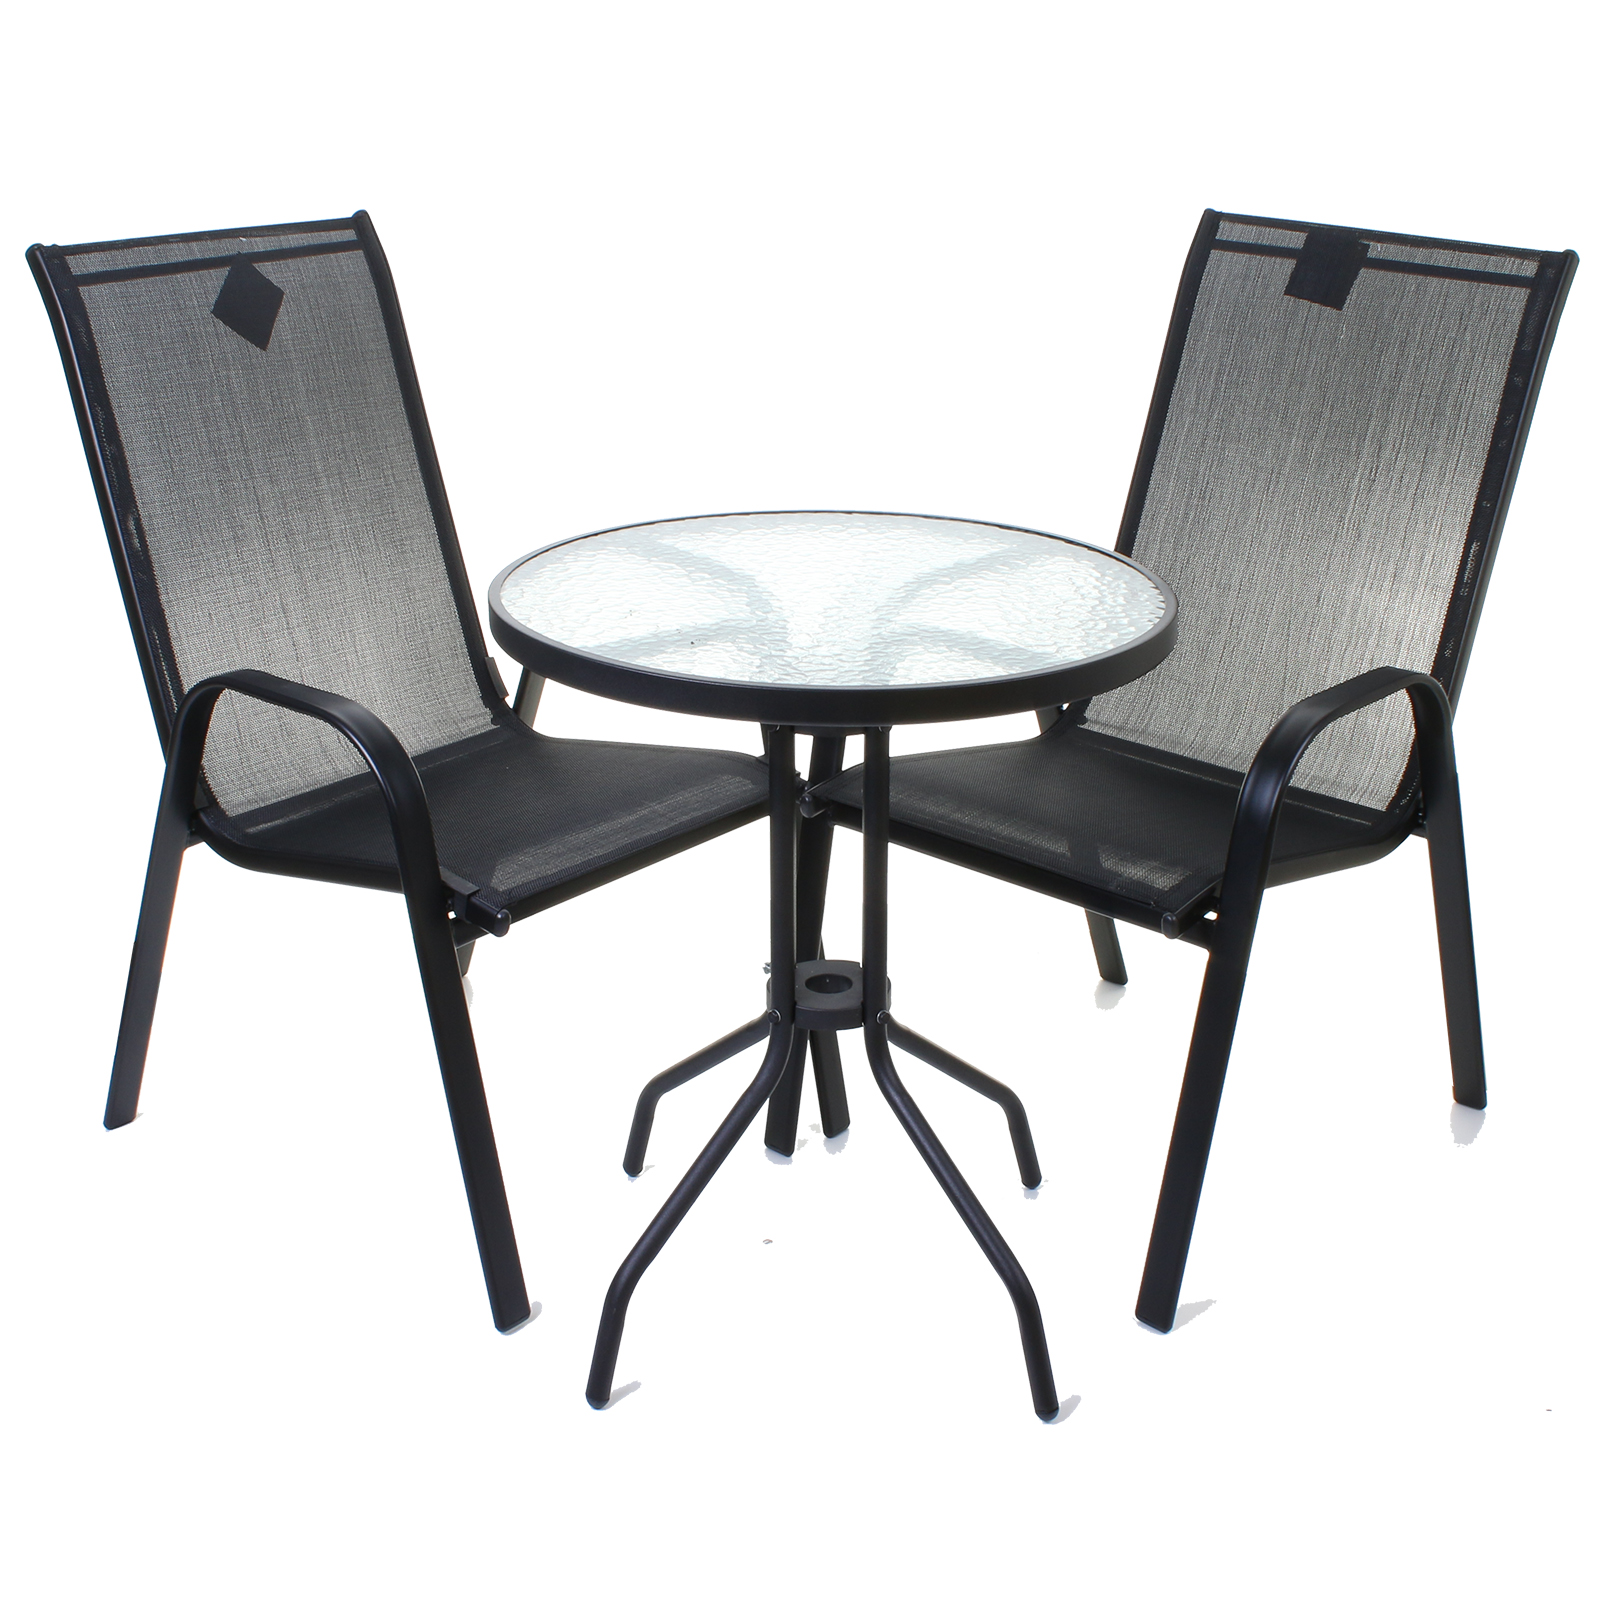 Garden Furniture 3 Piece garden furniture set patio outdoor large seating dining area chair